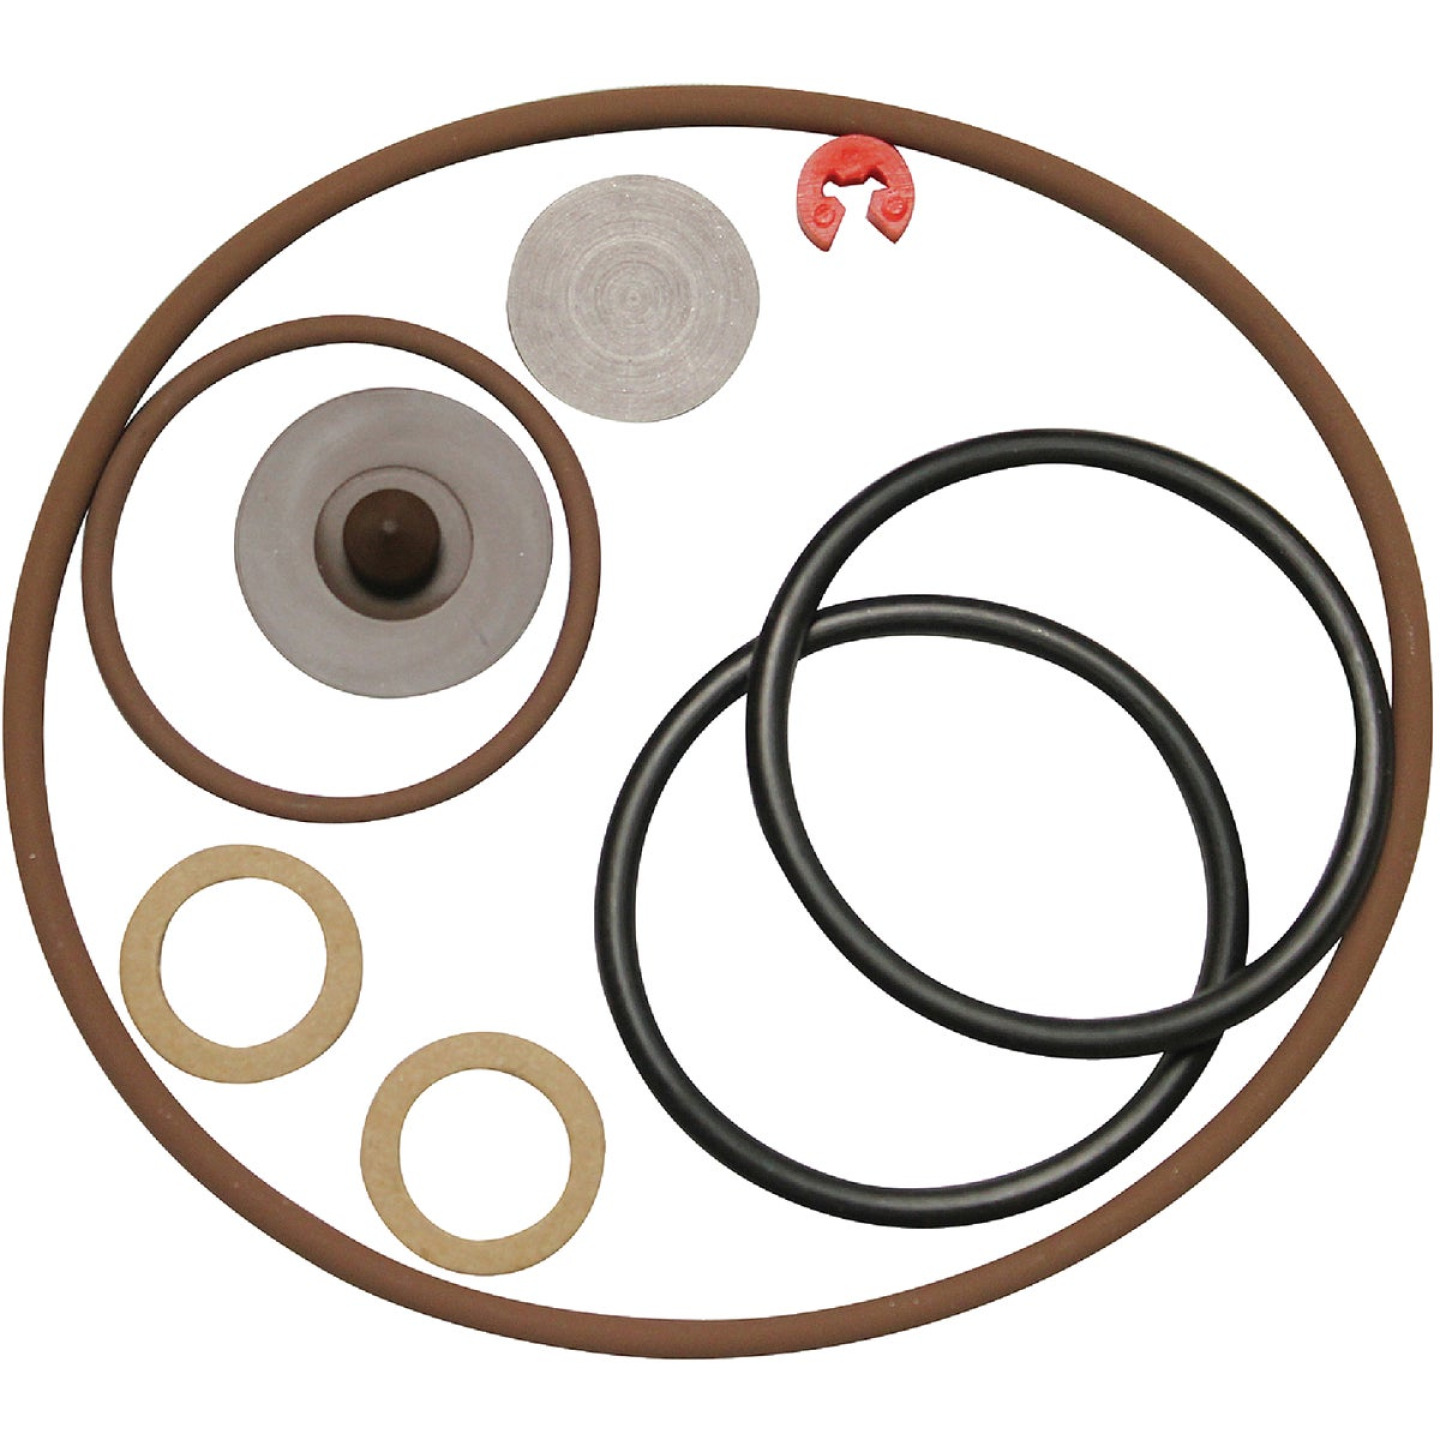 Chapin ProSeries Seal Repair Sprayer Parts Kit Image 1